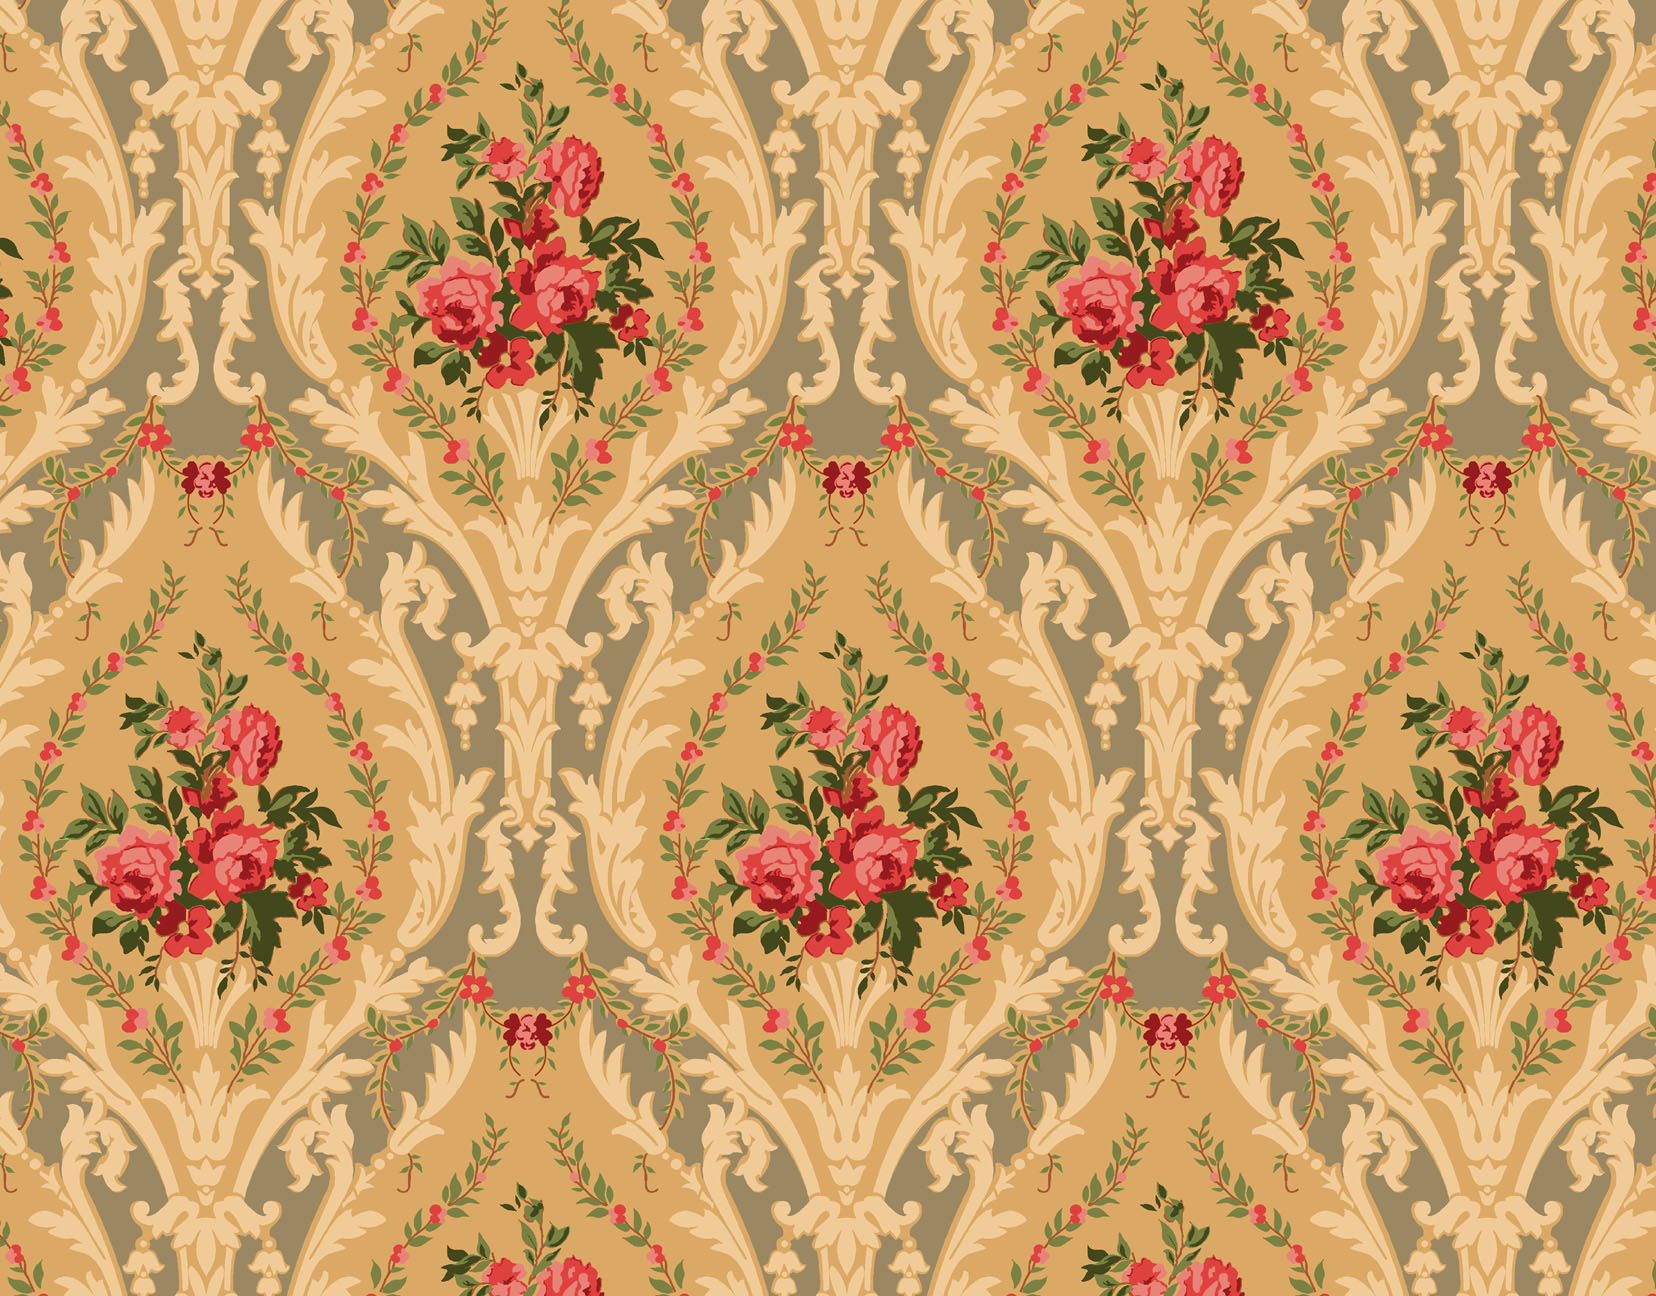 Victorian Era Wallpaper